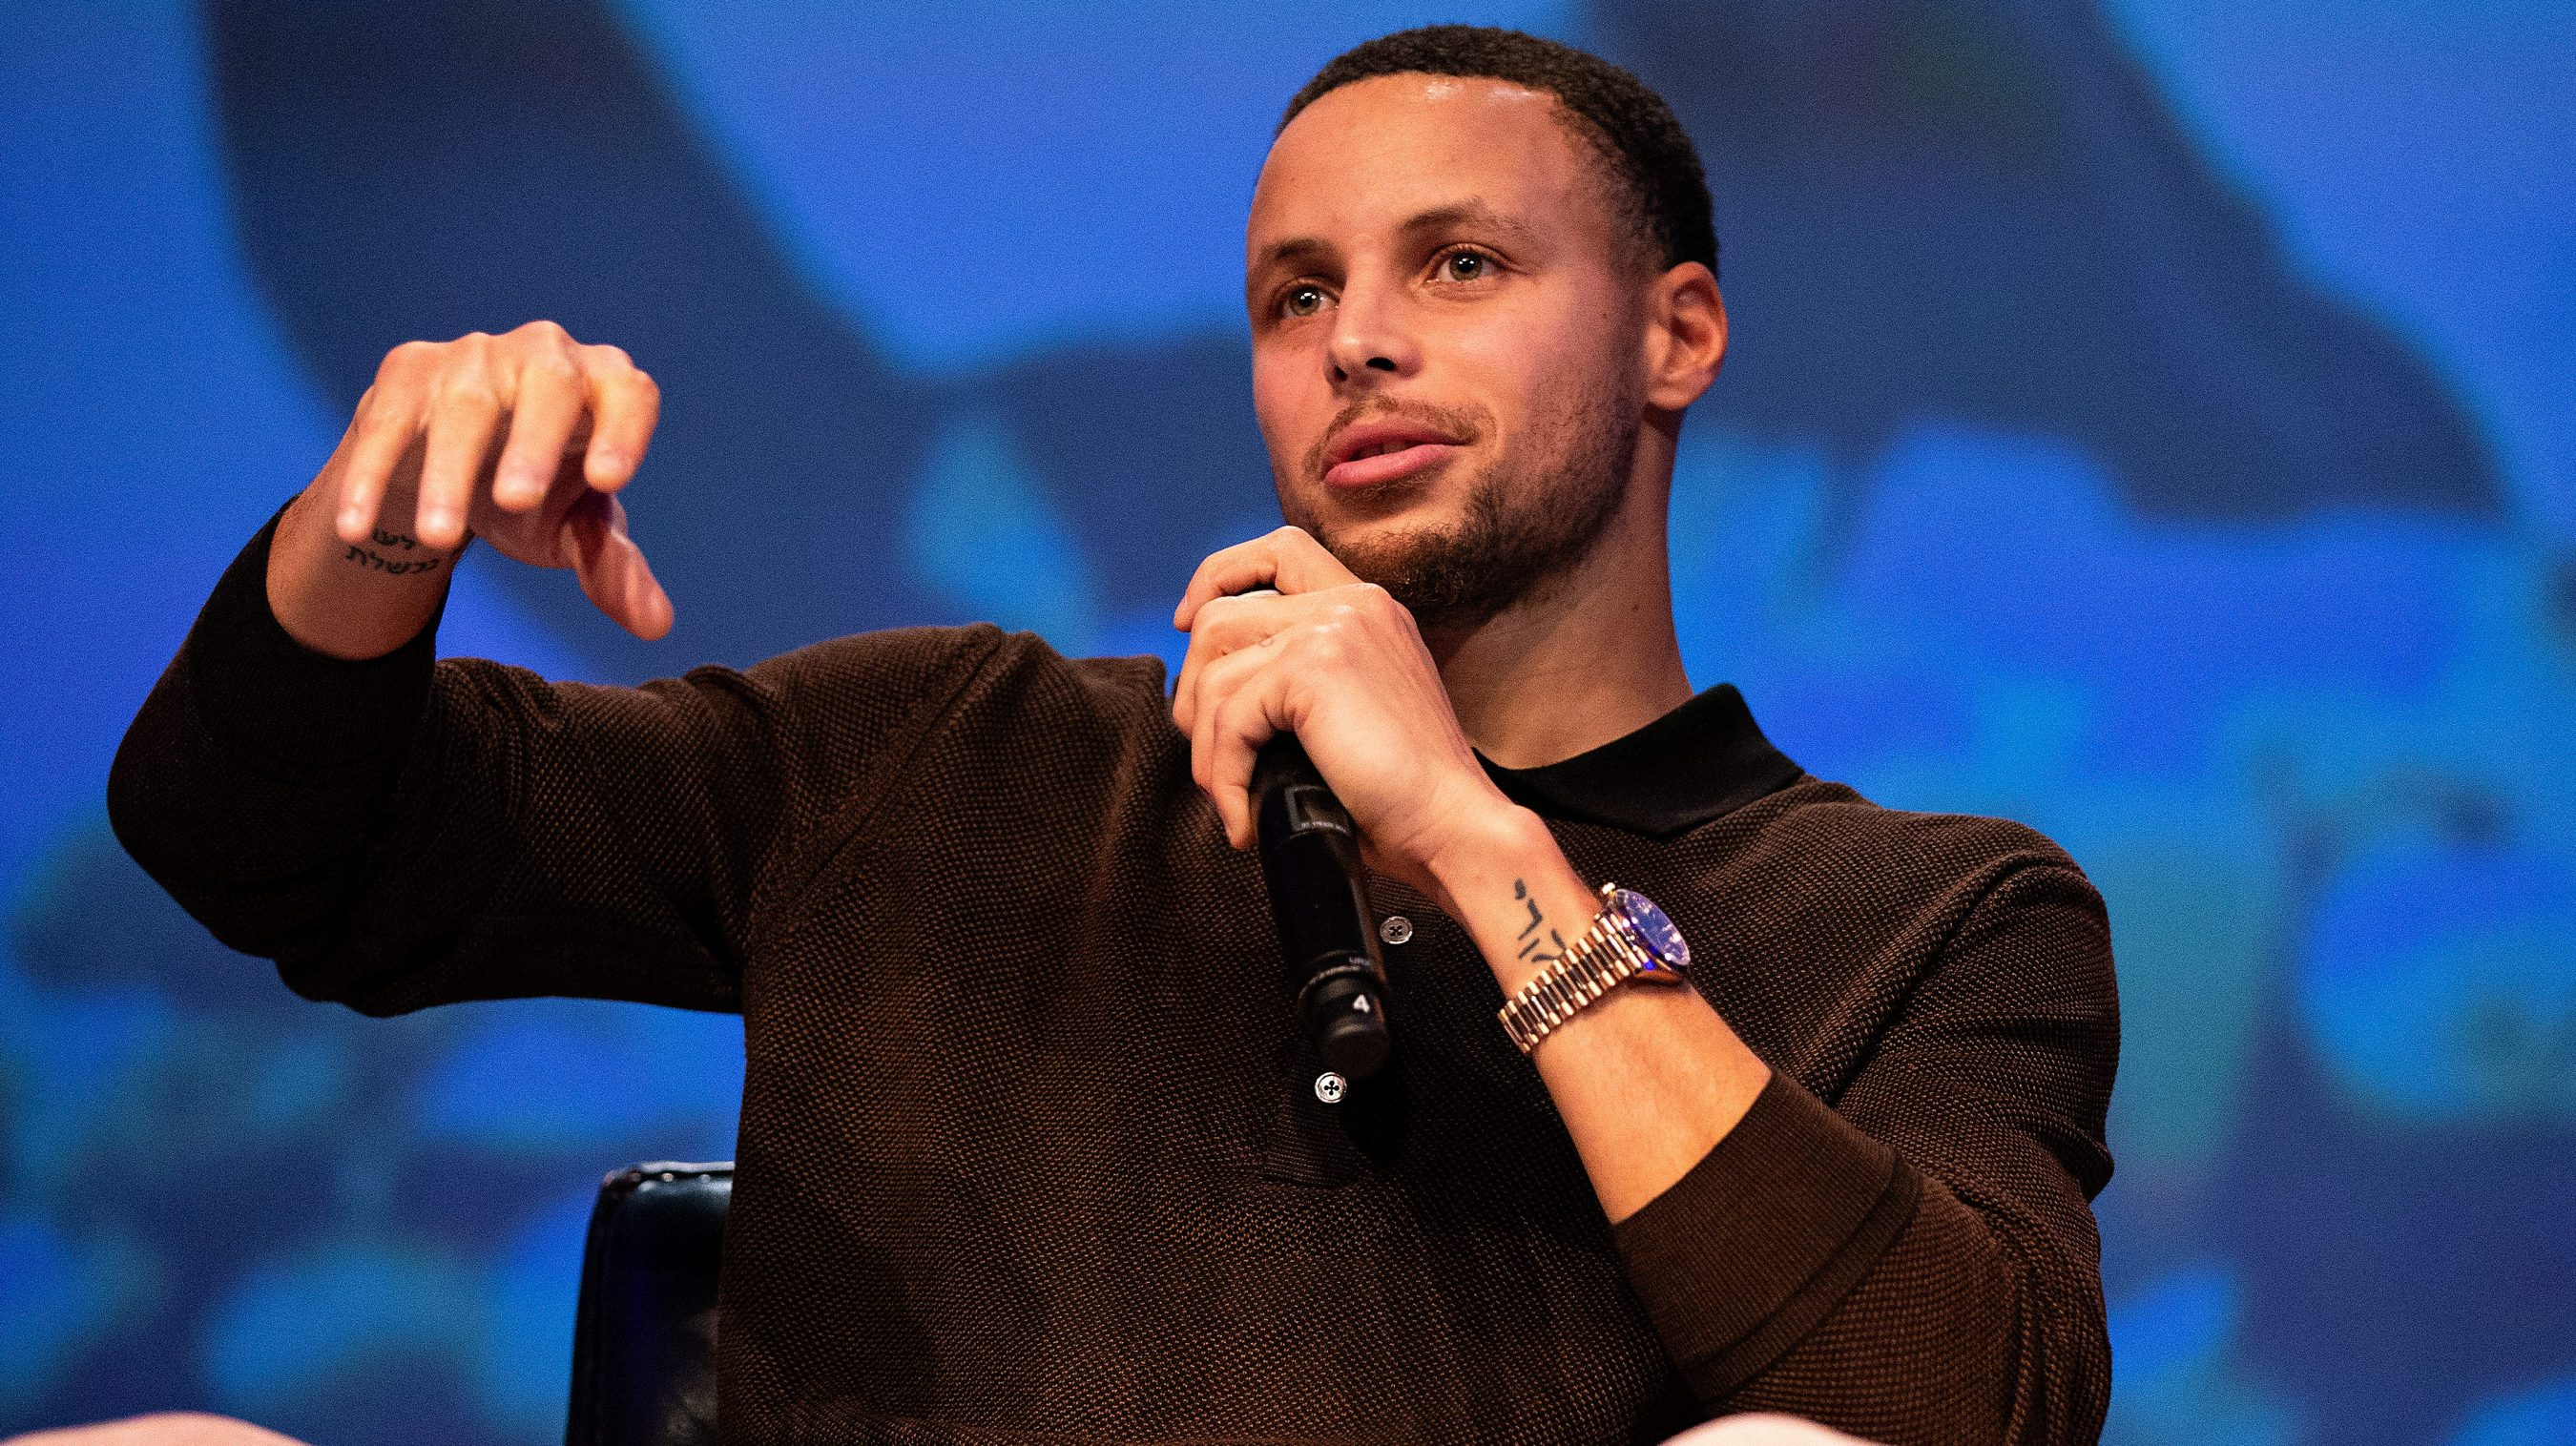 The power of the documentary 'Emanuel' brought Stephen Curry's mother to tears